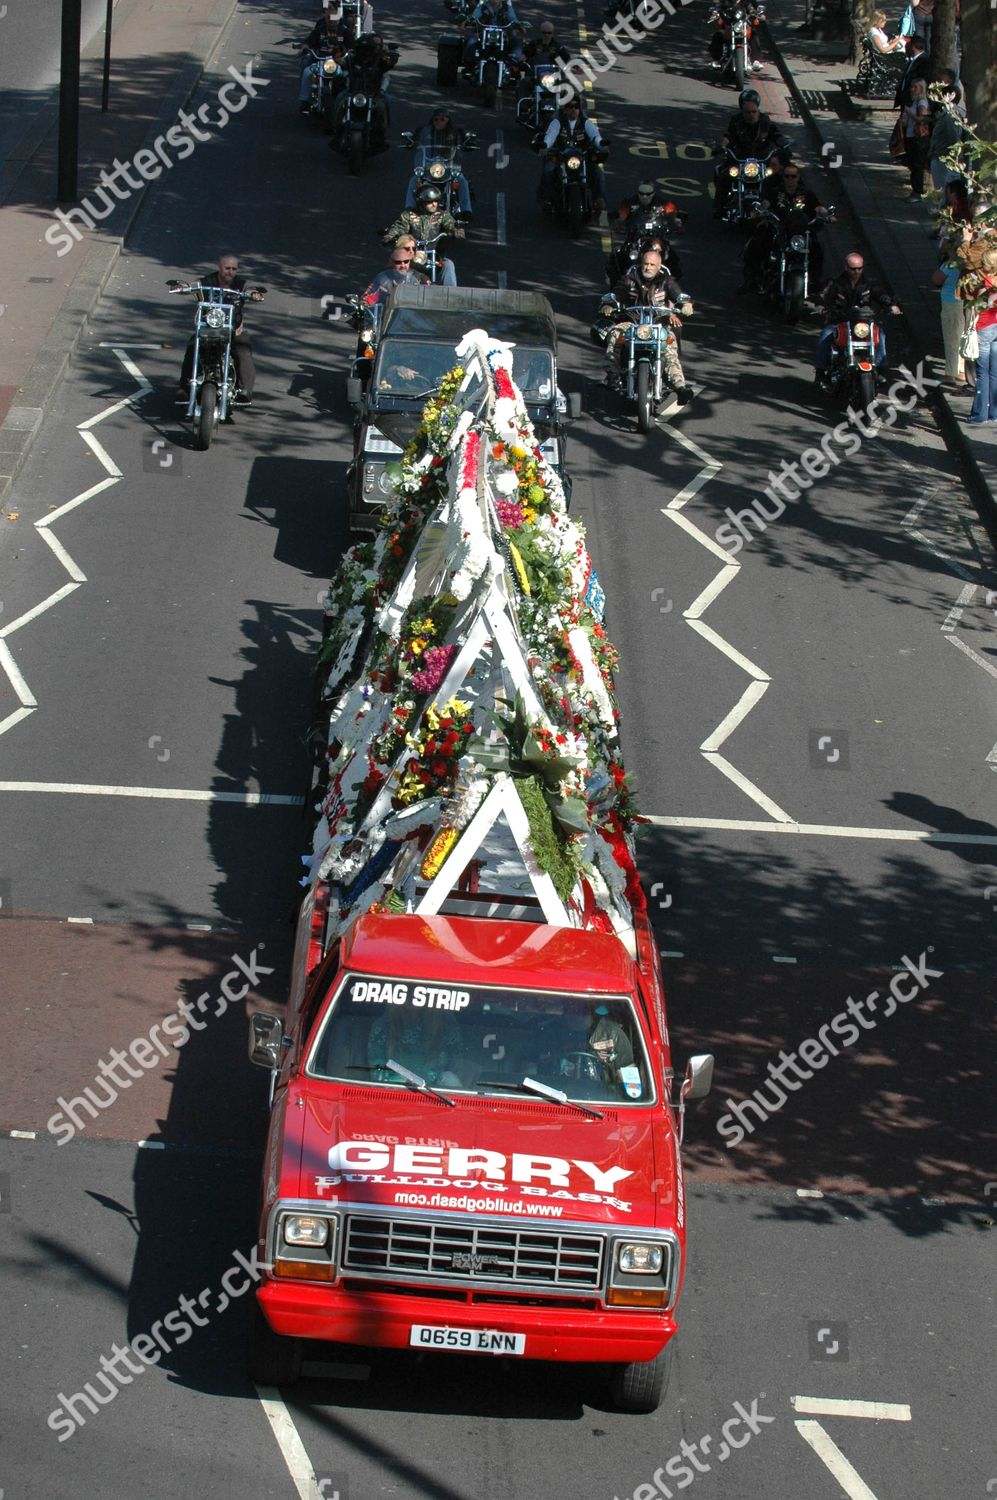 Funeral Gerry Tobin biker Hells Angels London Editorial